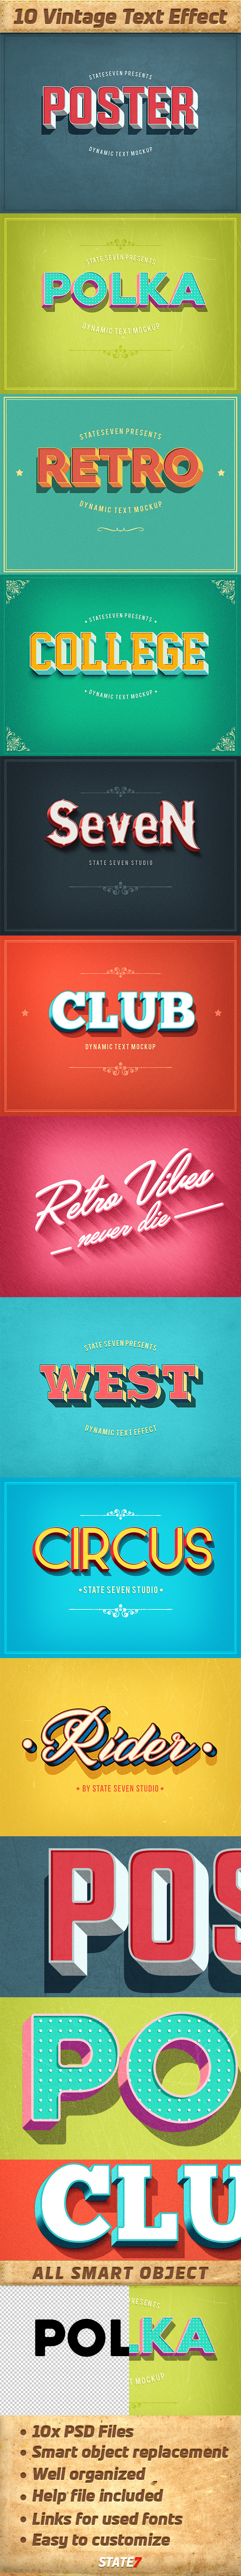 Vintage Text Effects Pack - Text Effects Actions